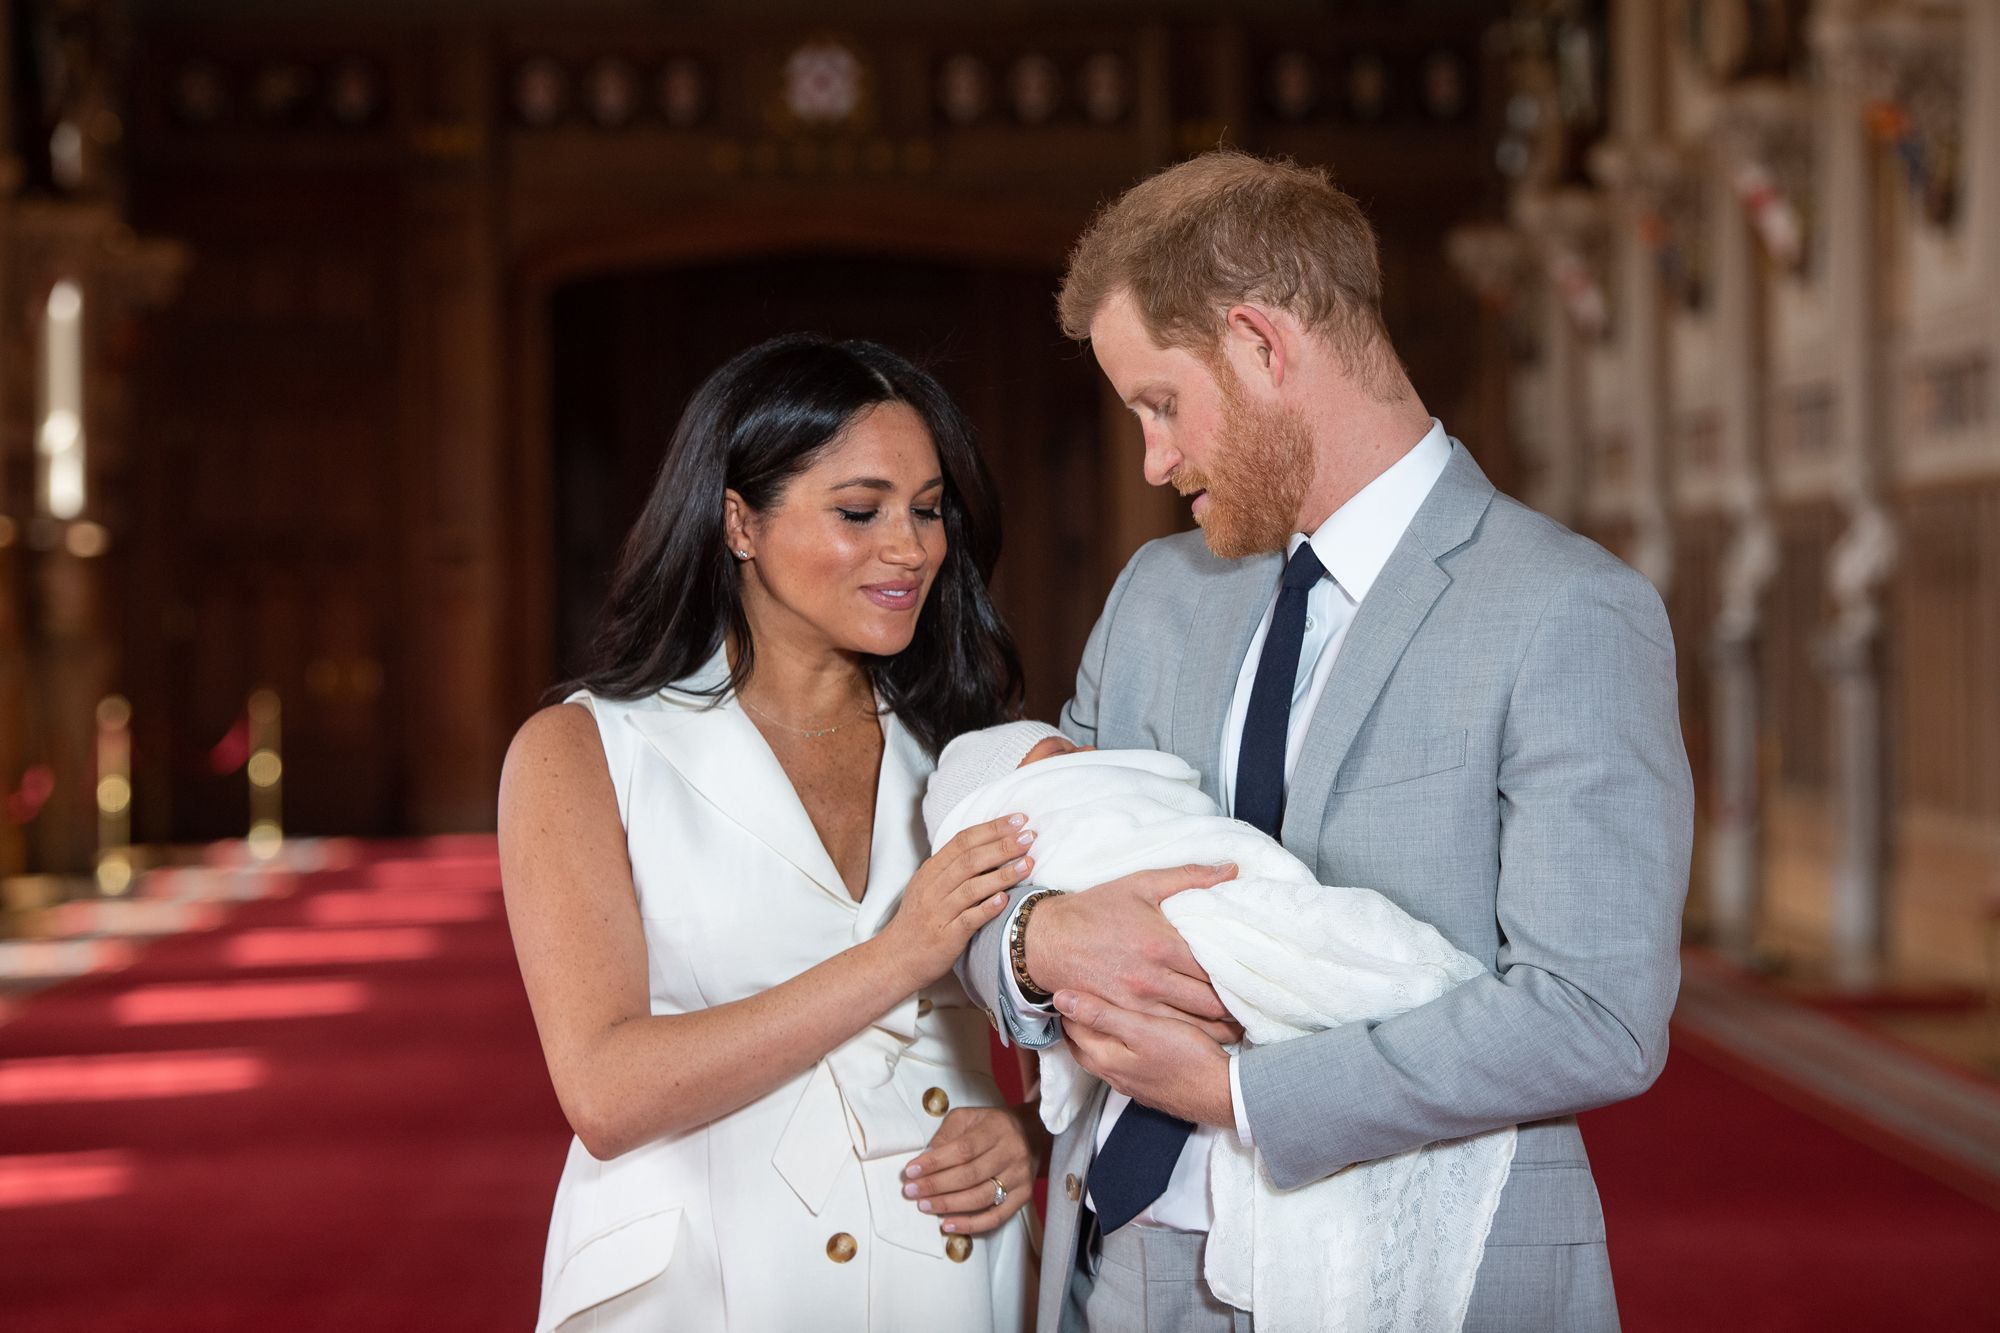 Baby Archie's christening details reportedly revealed as Prince Harry and Meghan Markle choose traditional baptism